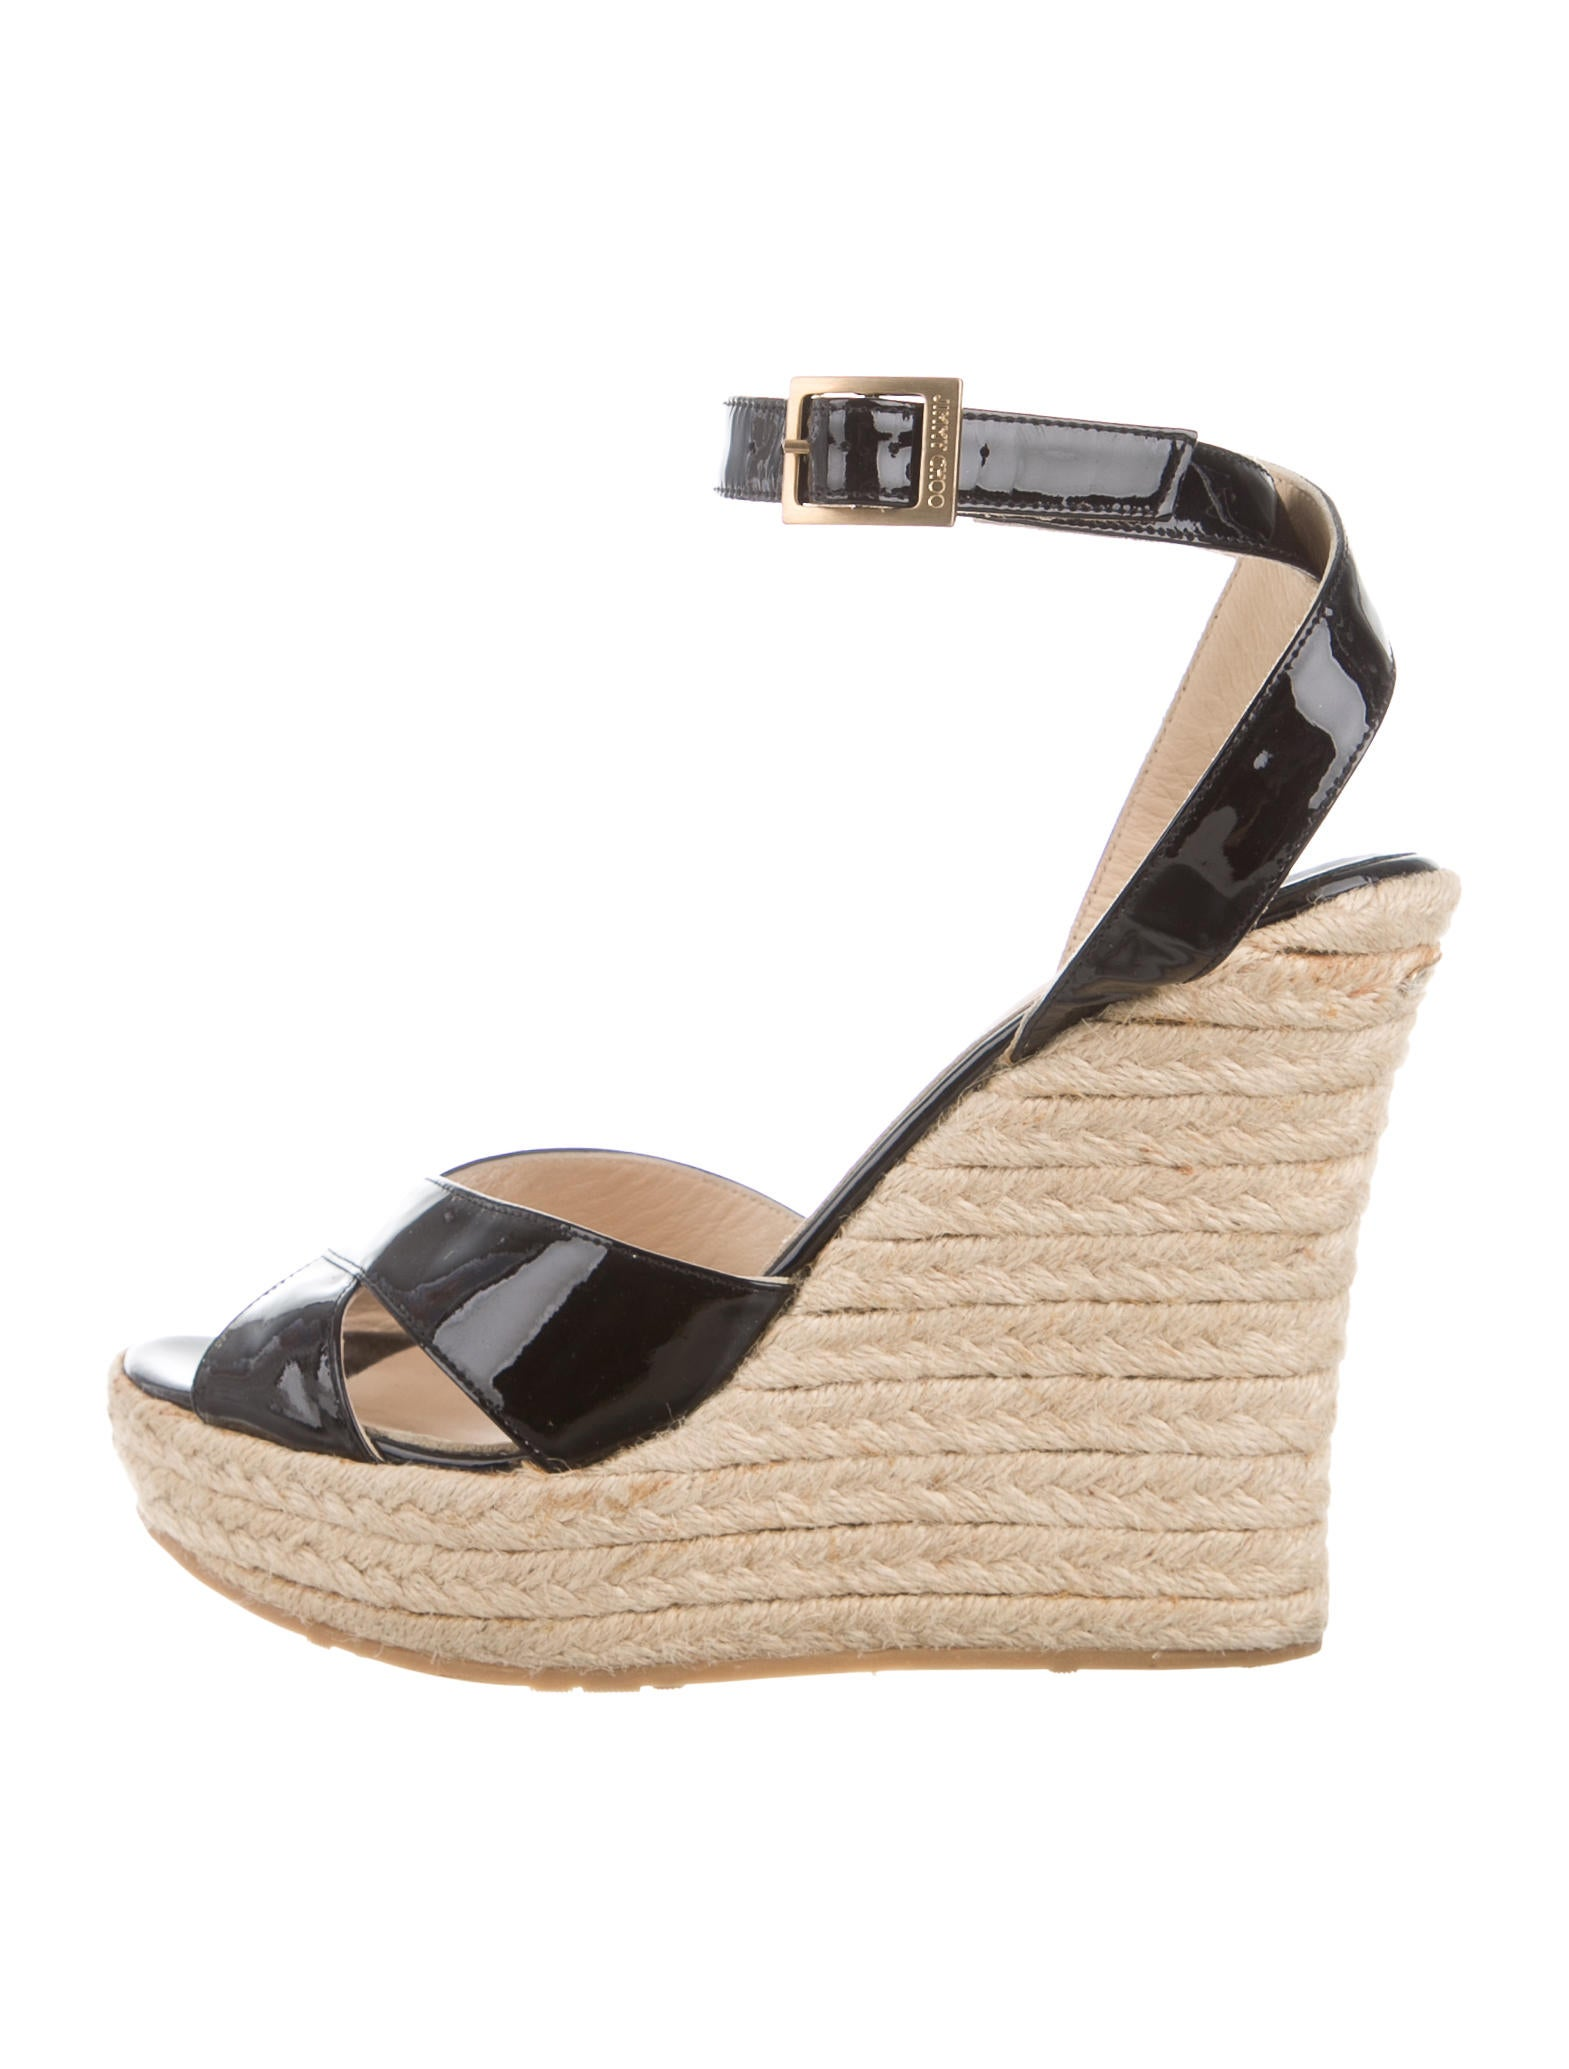 jimmy choo patent leather wedge sandals shoes jim62333